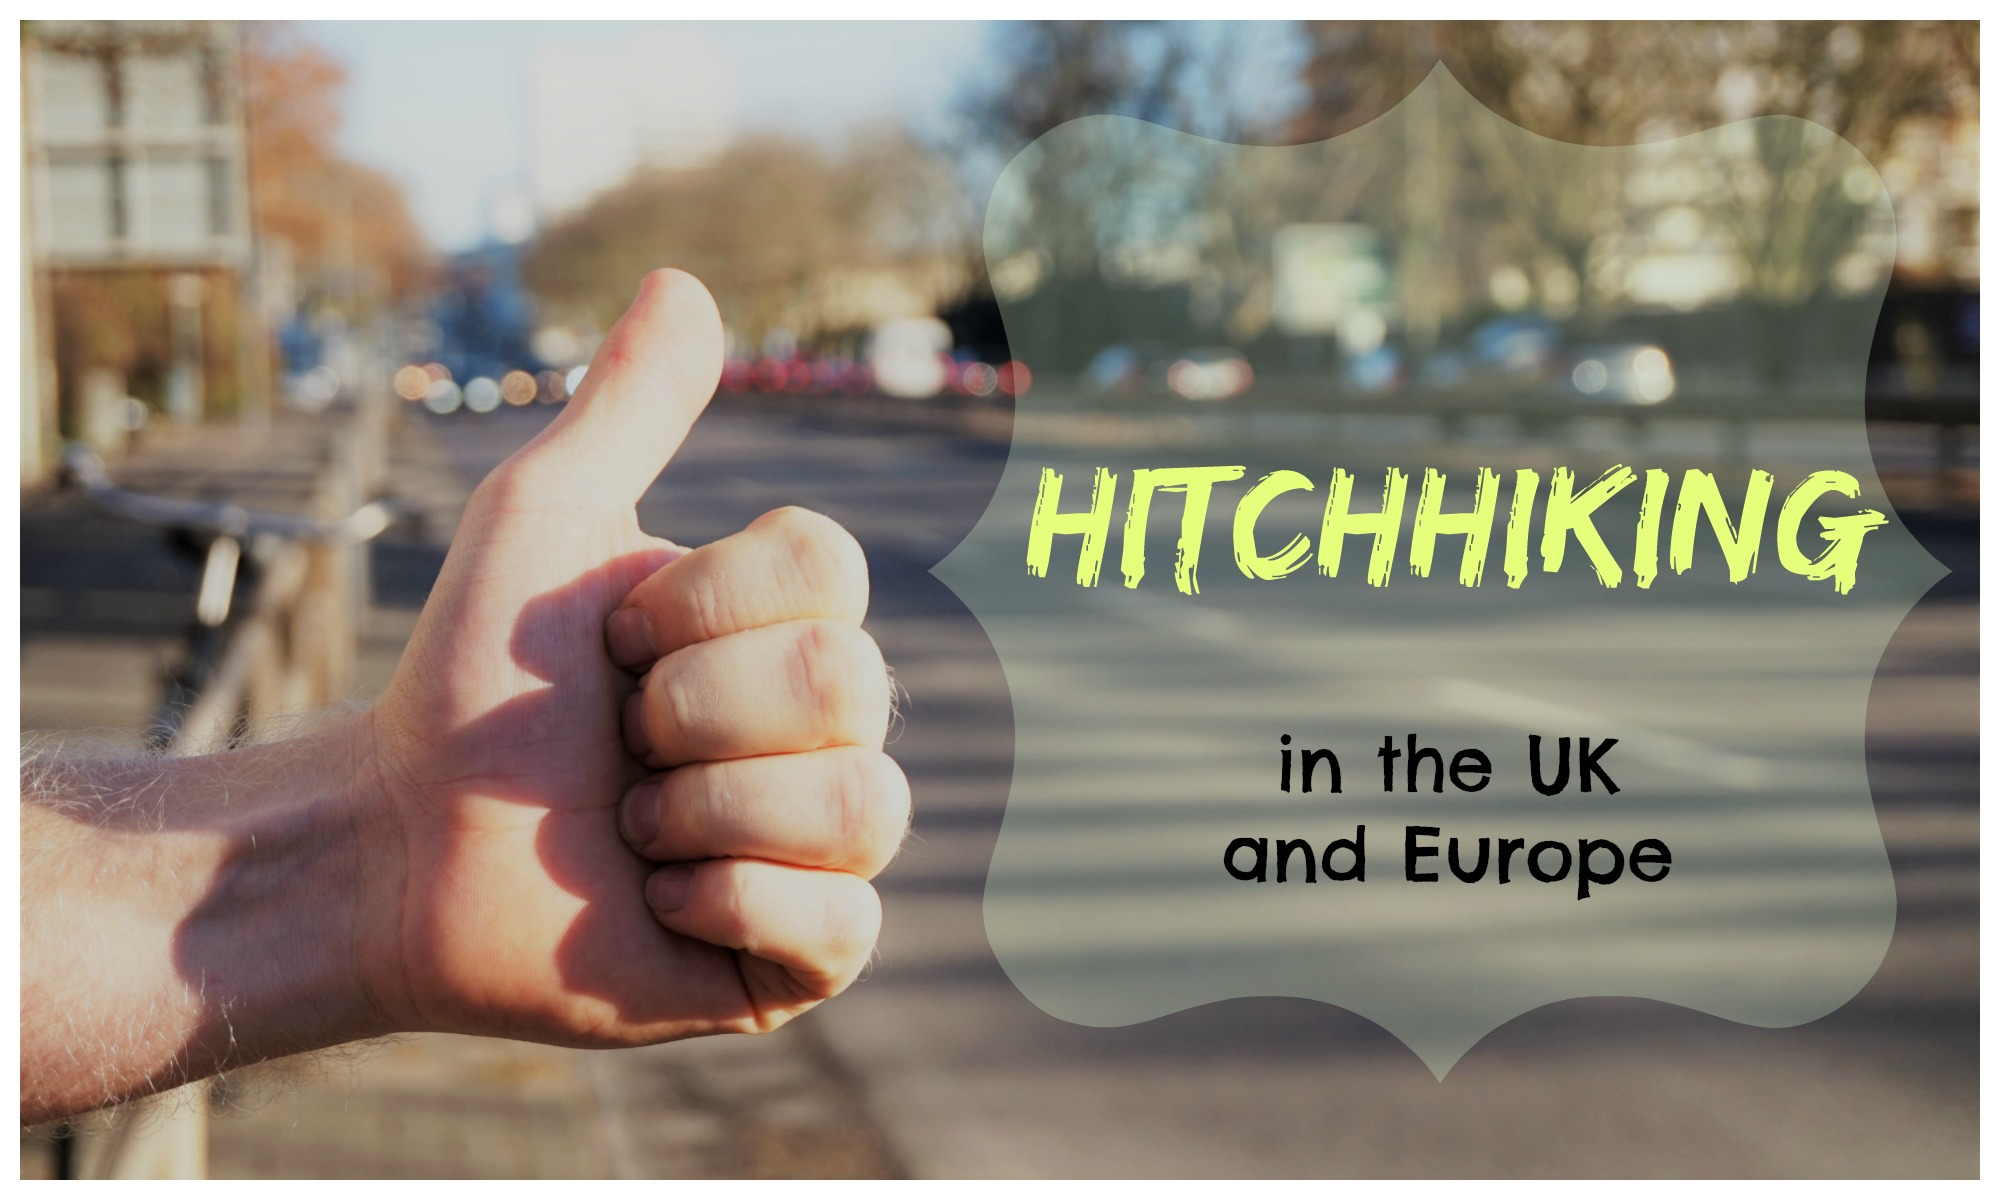 UK-Europe-Hitchhiking.jpg